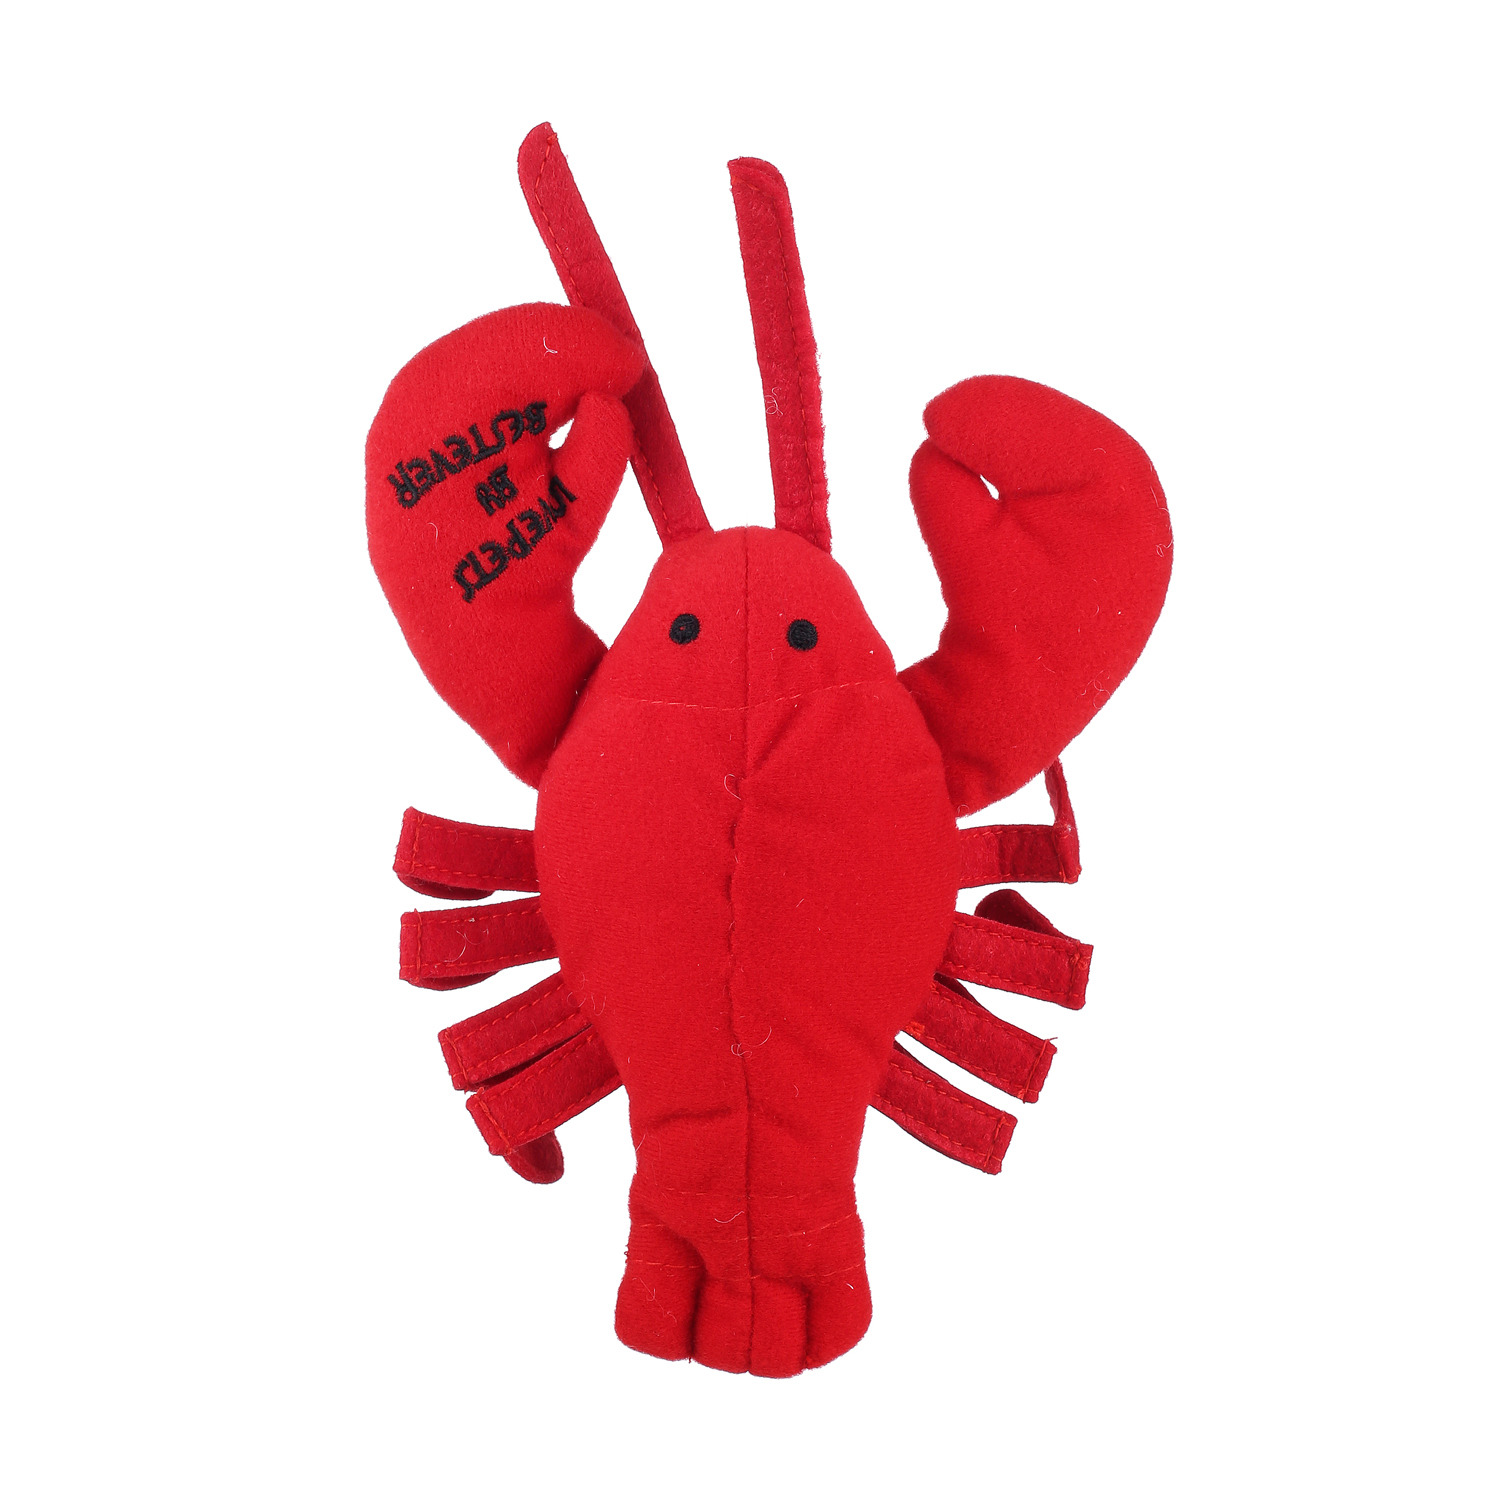 Love Pets Squeaky Lobstar(가재)찍찍삑삑